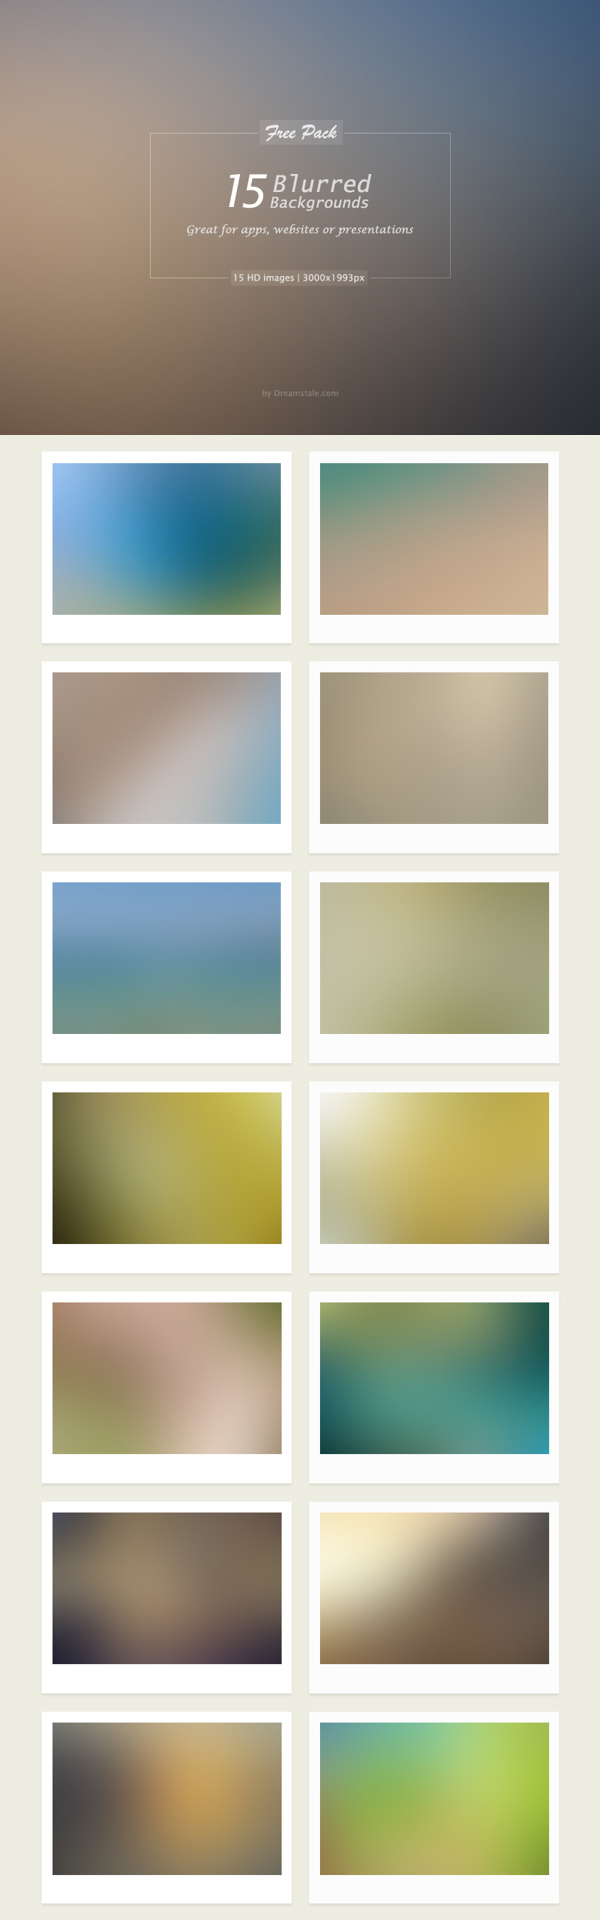 HD-Free-Blurred-Backgrounds-Perfect-for-infographics-wallpaper-wp5002423